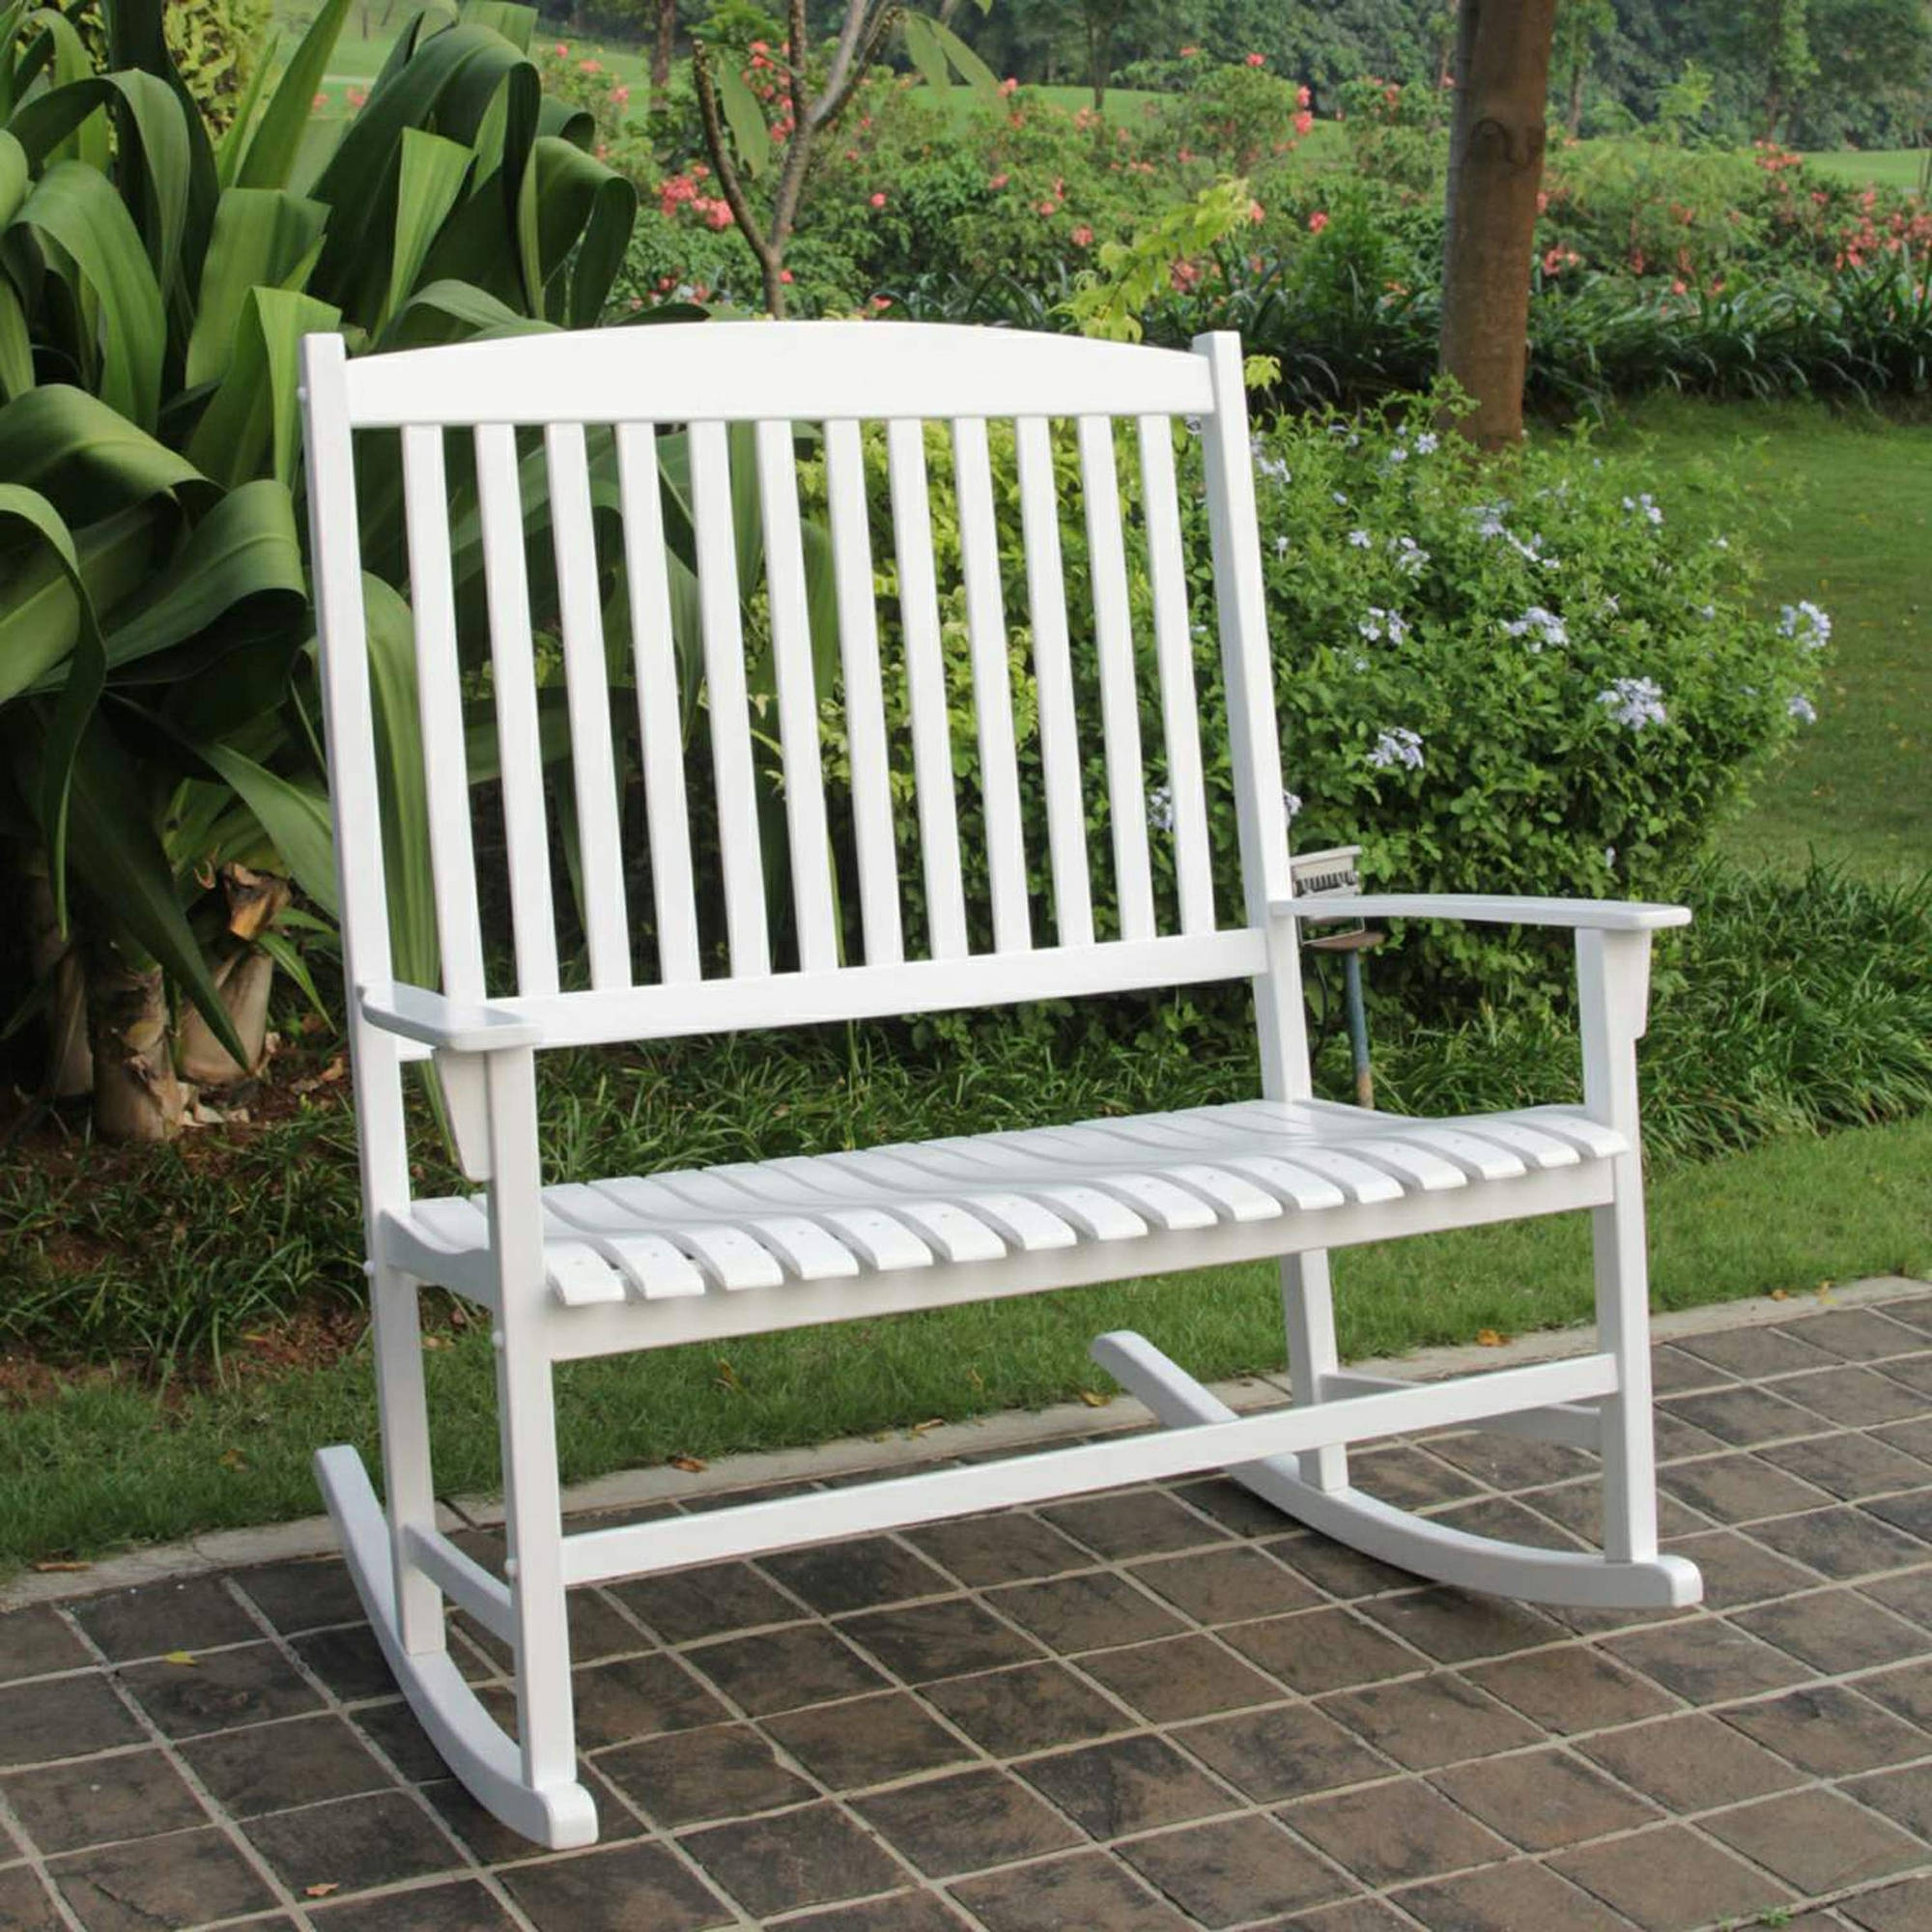 Well Known Patio Loveseat White Hardwood Outdoor Rocking Chair For 2 For Patio Rocking Chairs (View 18 of 20)